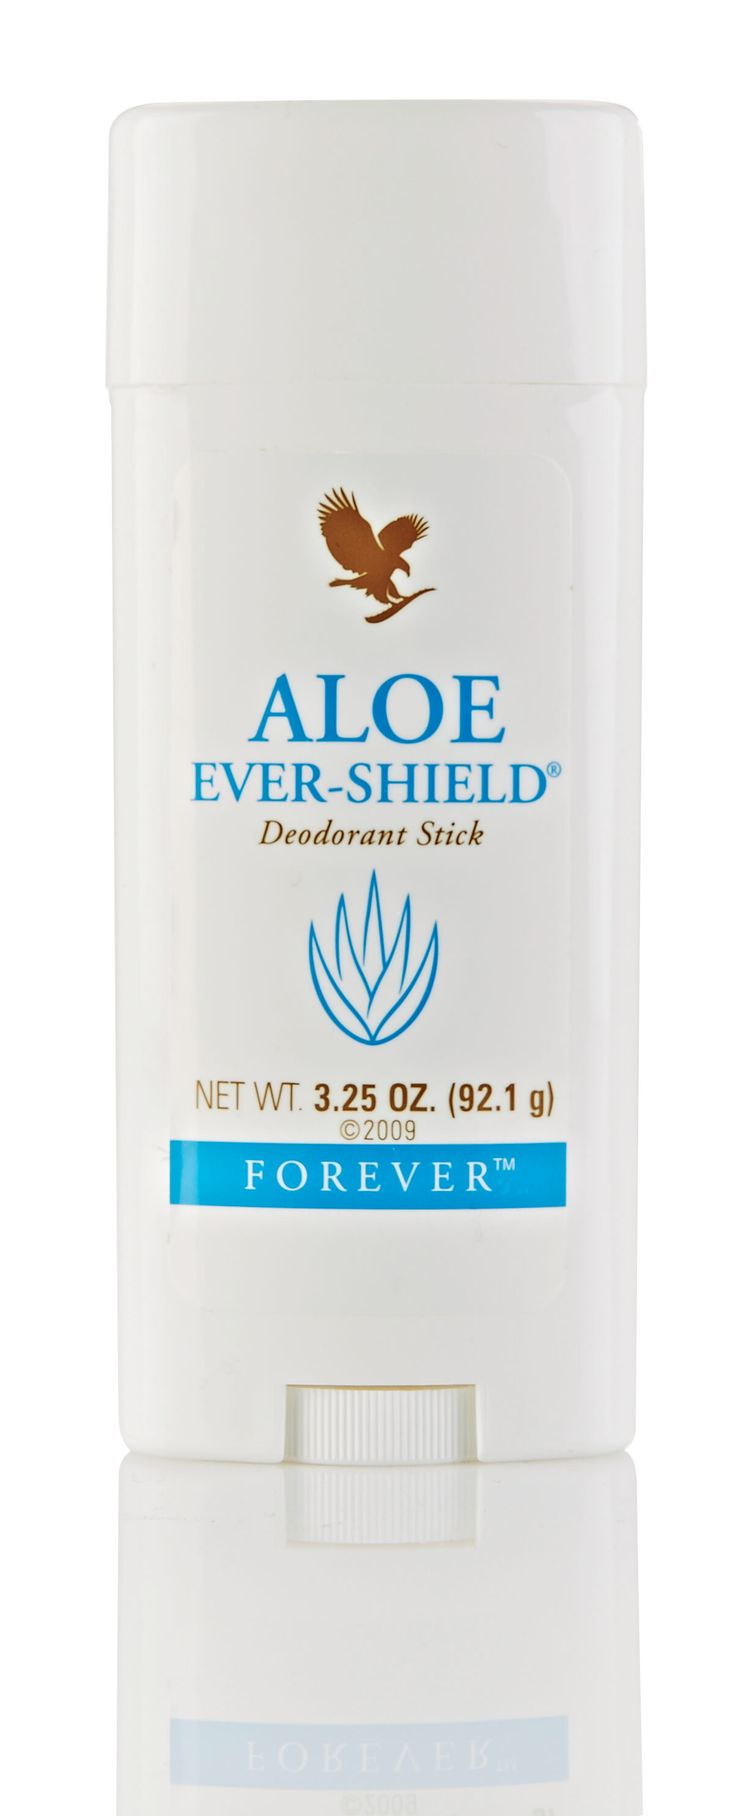 Keep fresh all day with the #natural #Aloe Ever-Shield Deodorant Stick. It contains no aluminium! #FLP http://link.flp.social/R9zplq